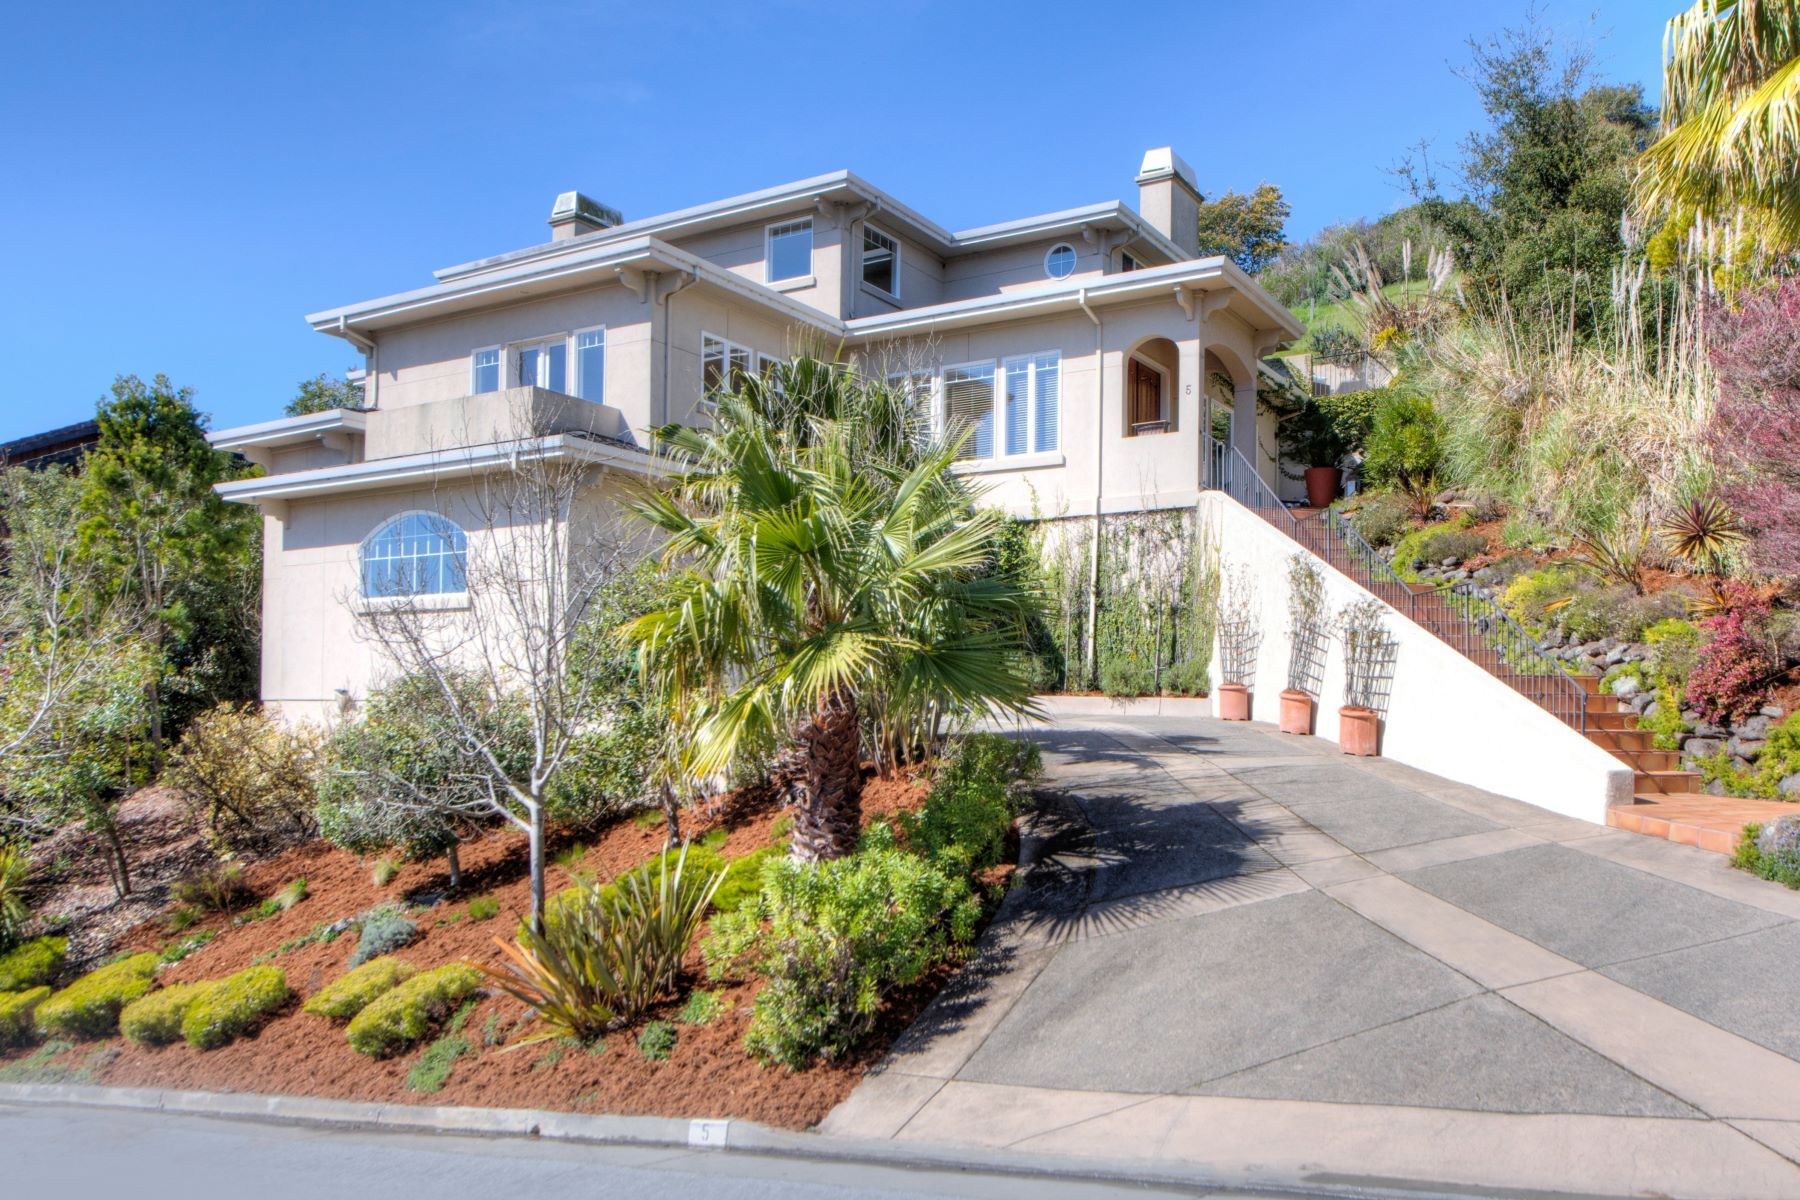 Single Family Home for Sale at Perfection & Elegance in Mill Valley 5 Vista Real Mill Valley, California, 94941 United States